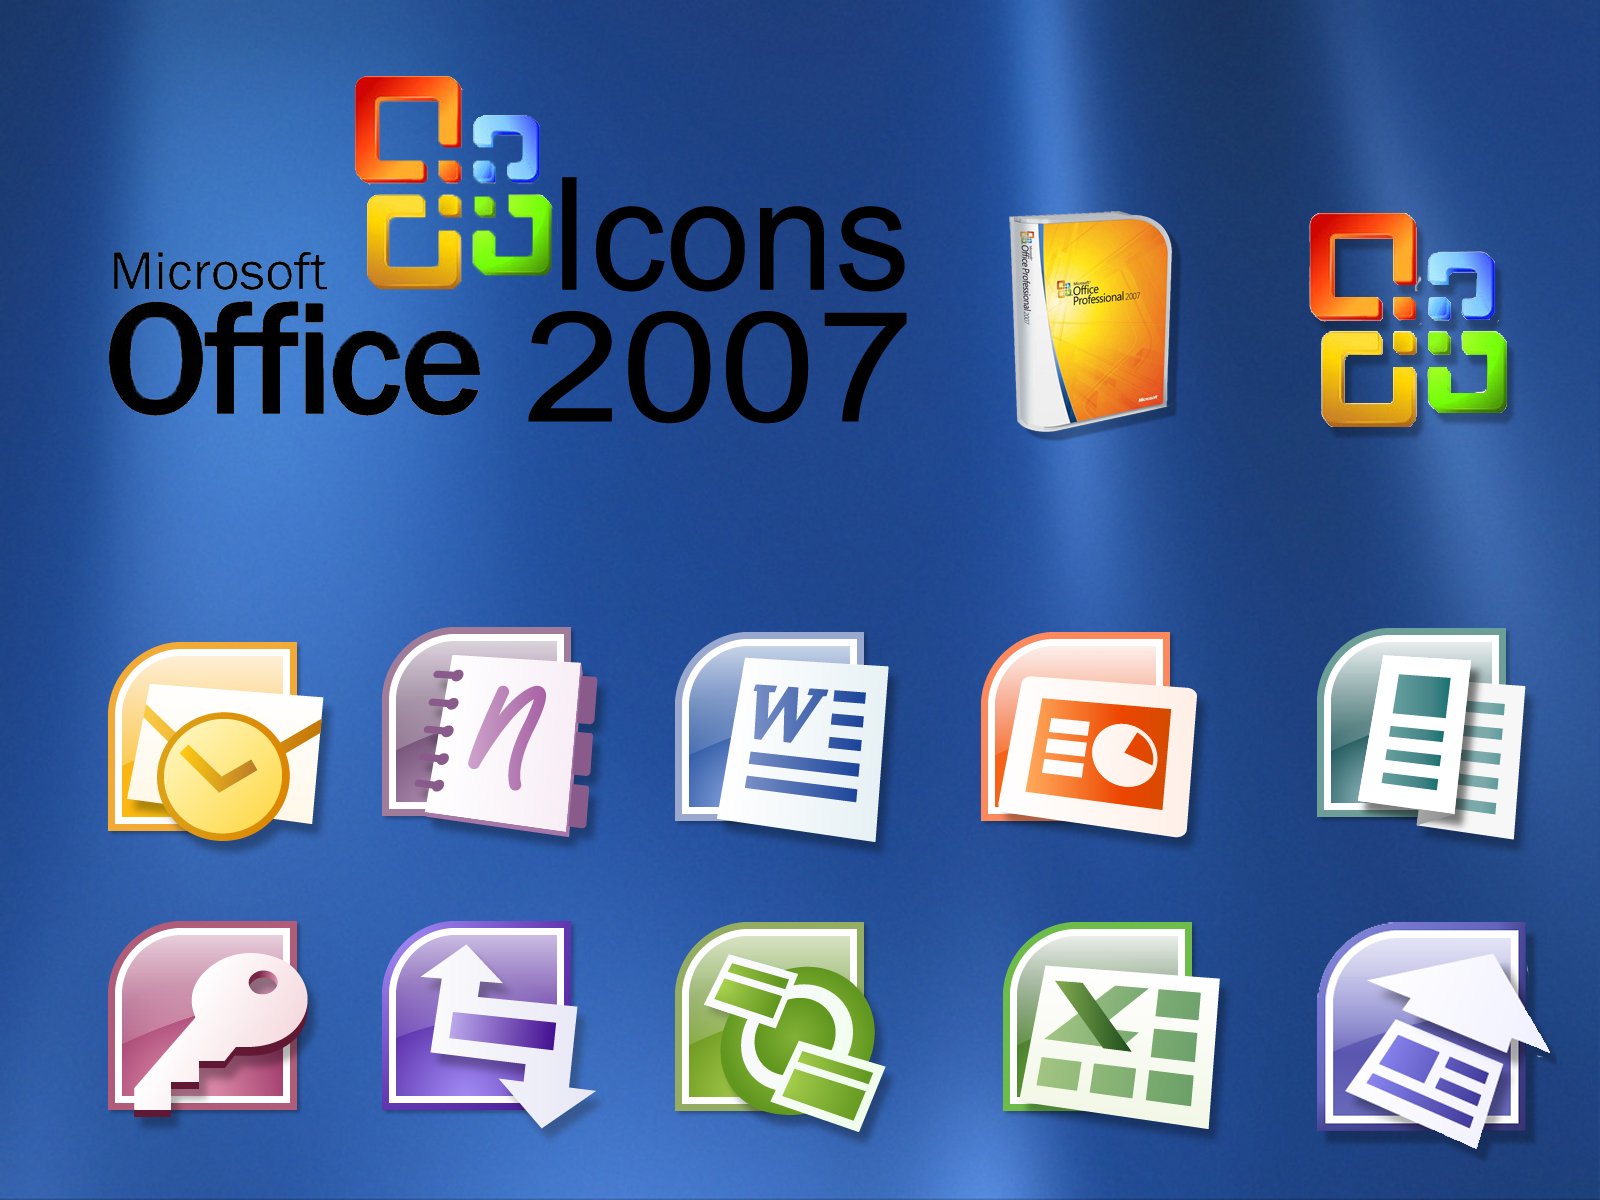 Office 2007 Icons